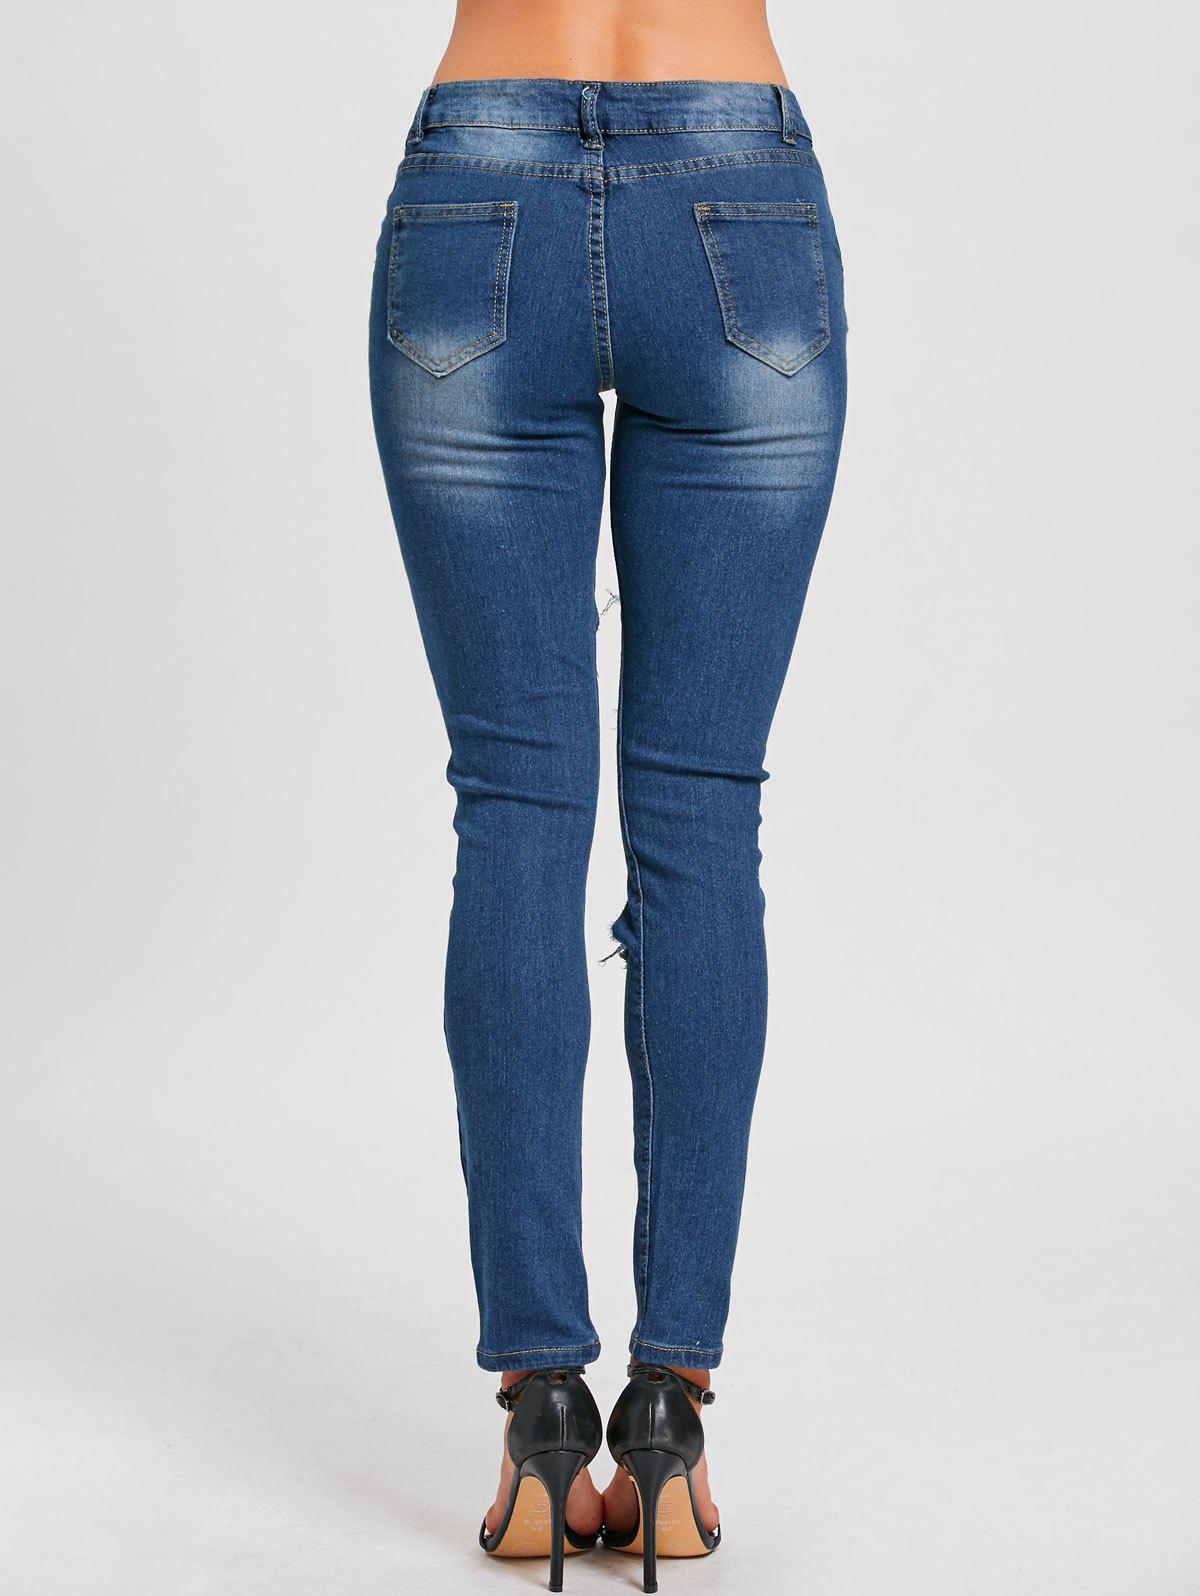 Skinny Distressed Hole Jeans - BLUE 2XL